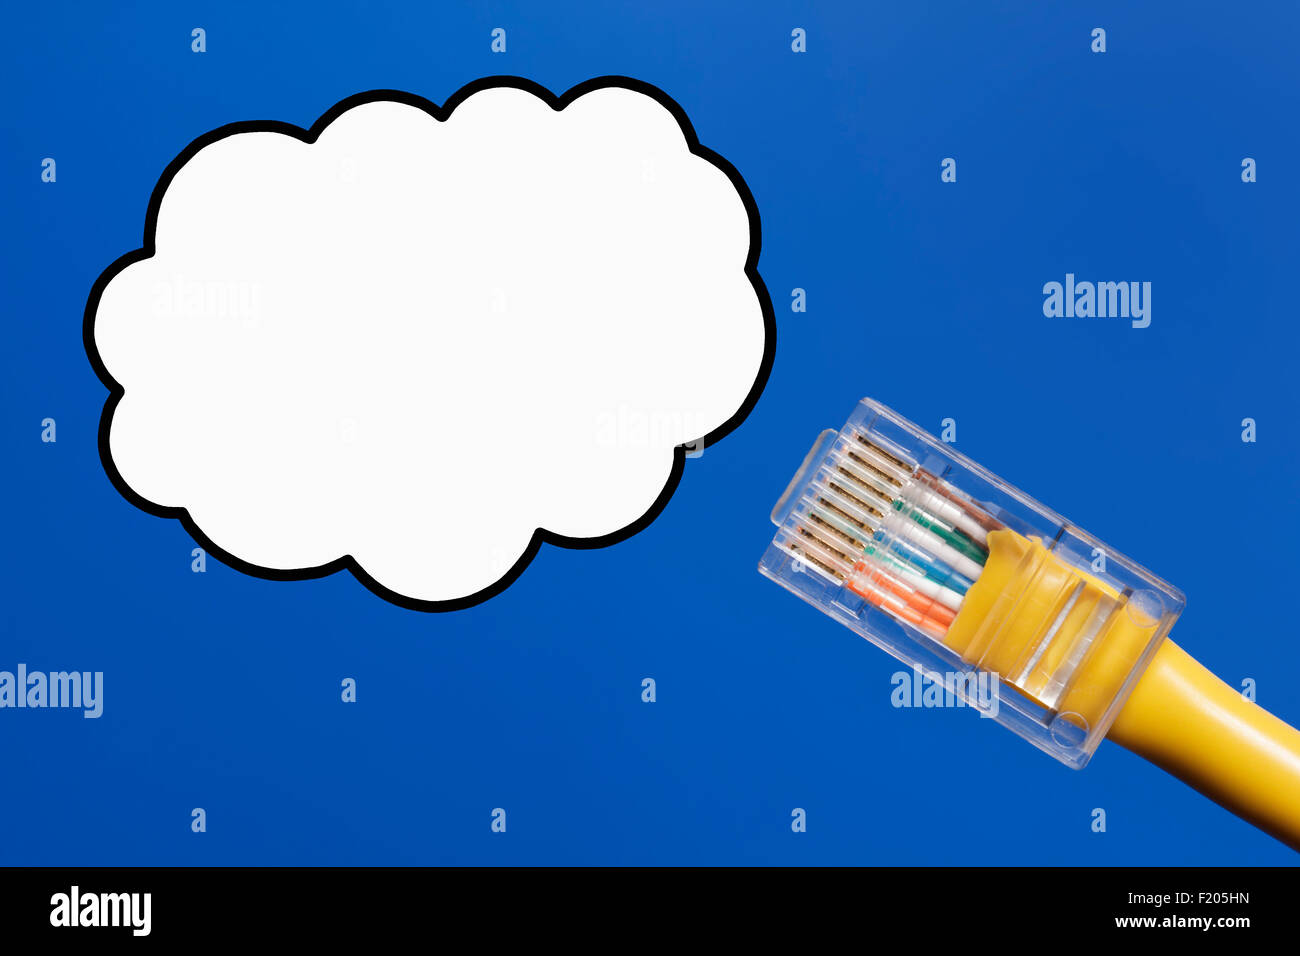 Joining a social network, social networking, individual joining a social network, cloud computing, cloud data, data Stock Photo